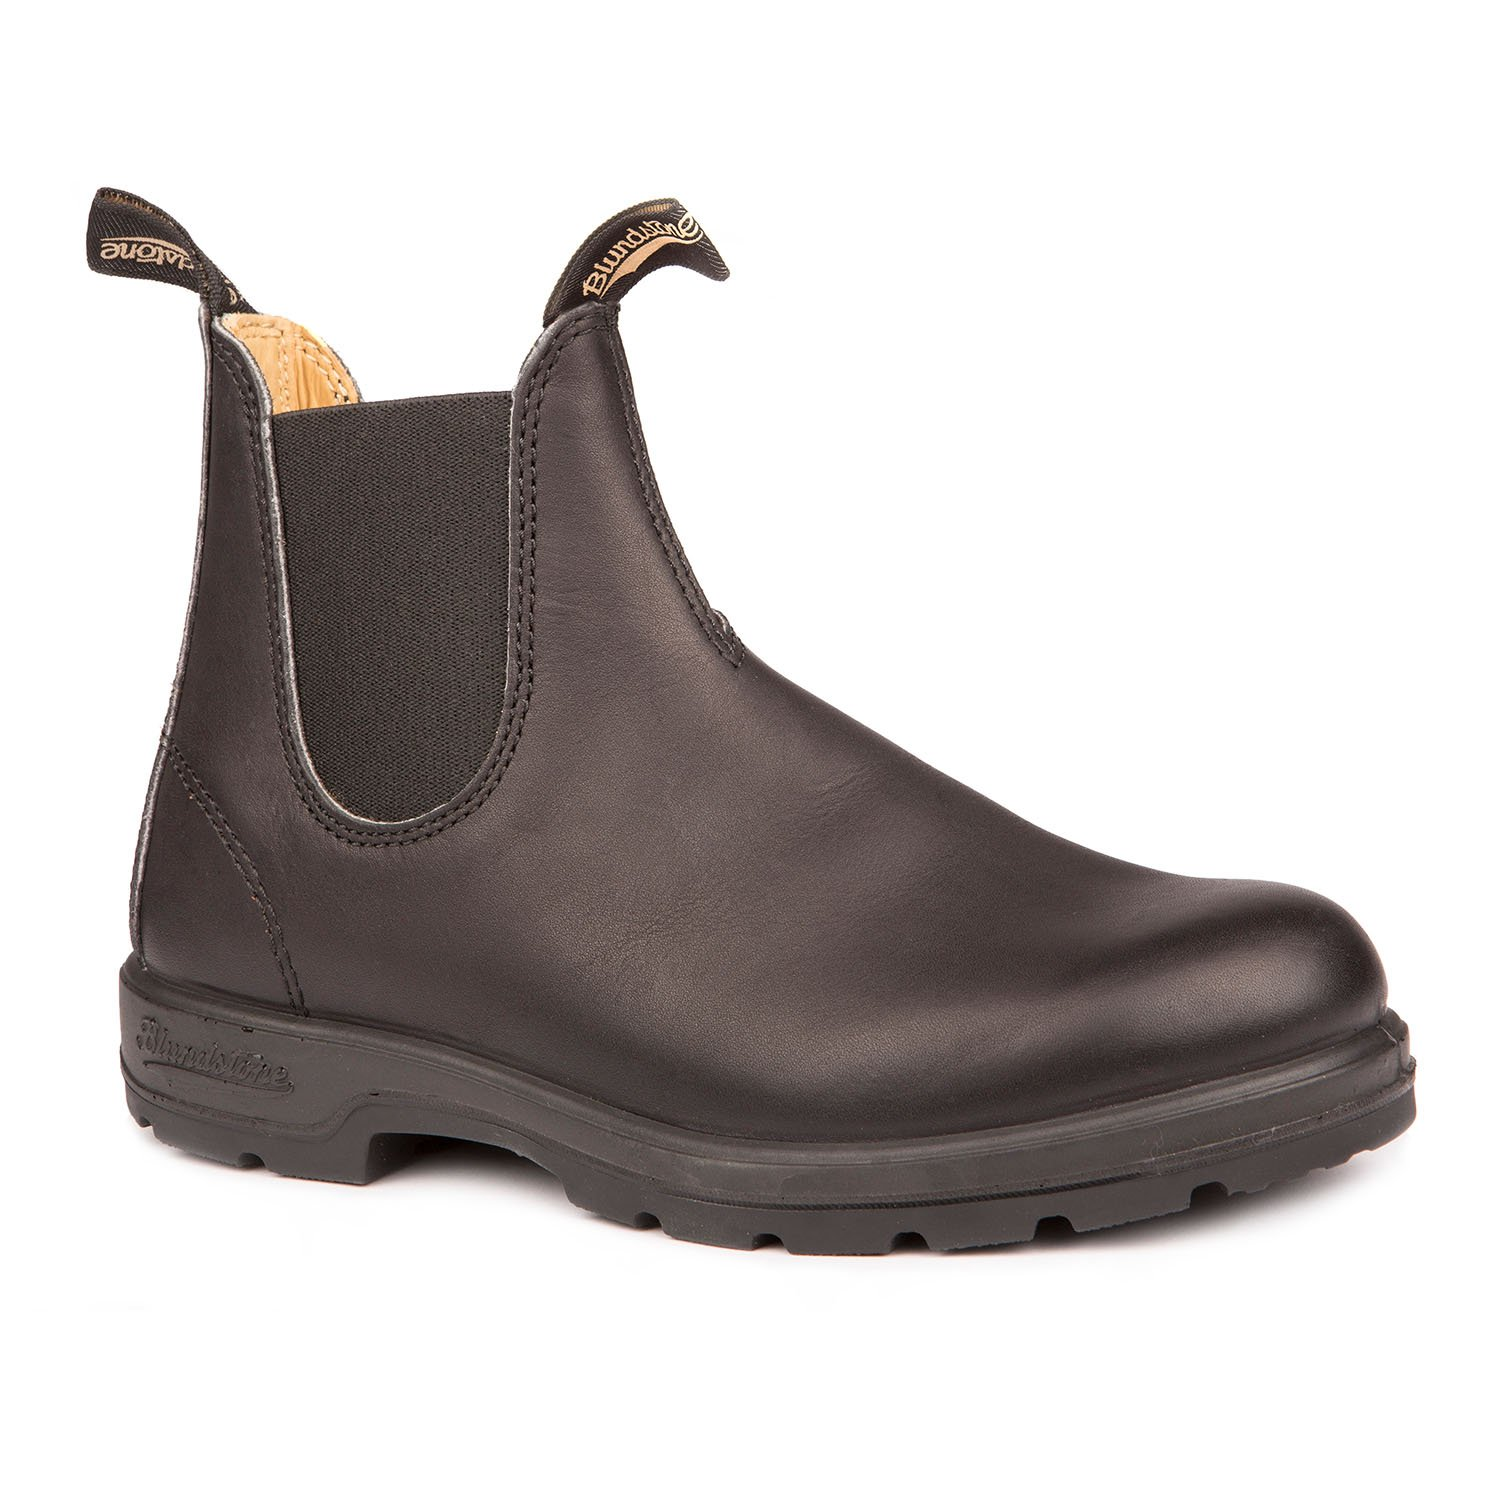 Blundstone 558 - Leather Lined Classic Black-Blundstone